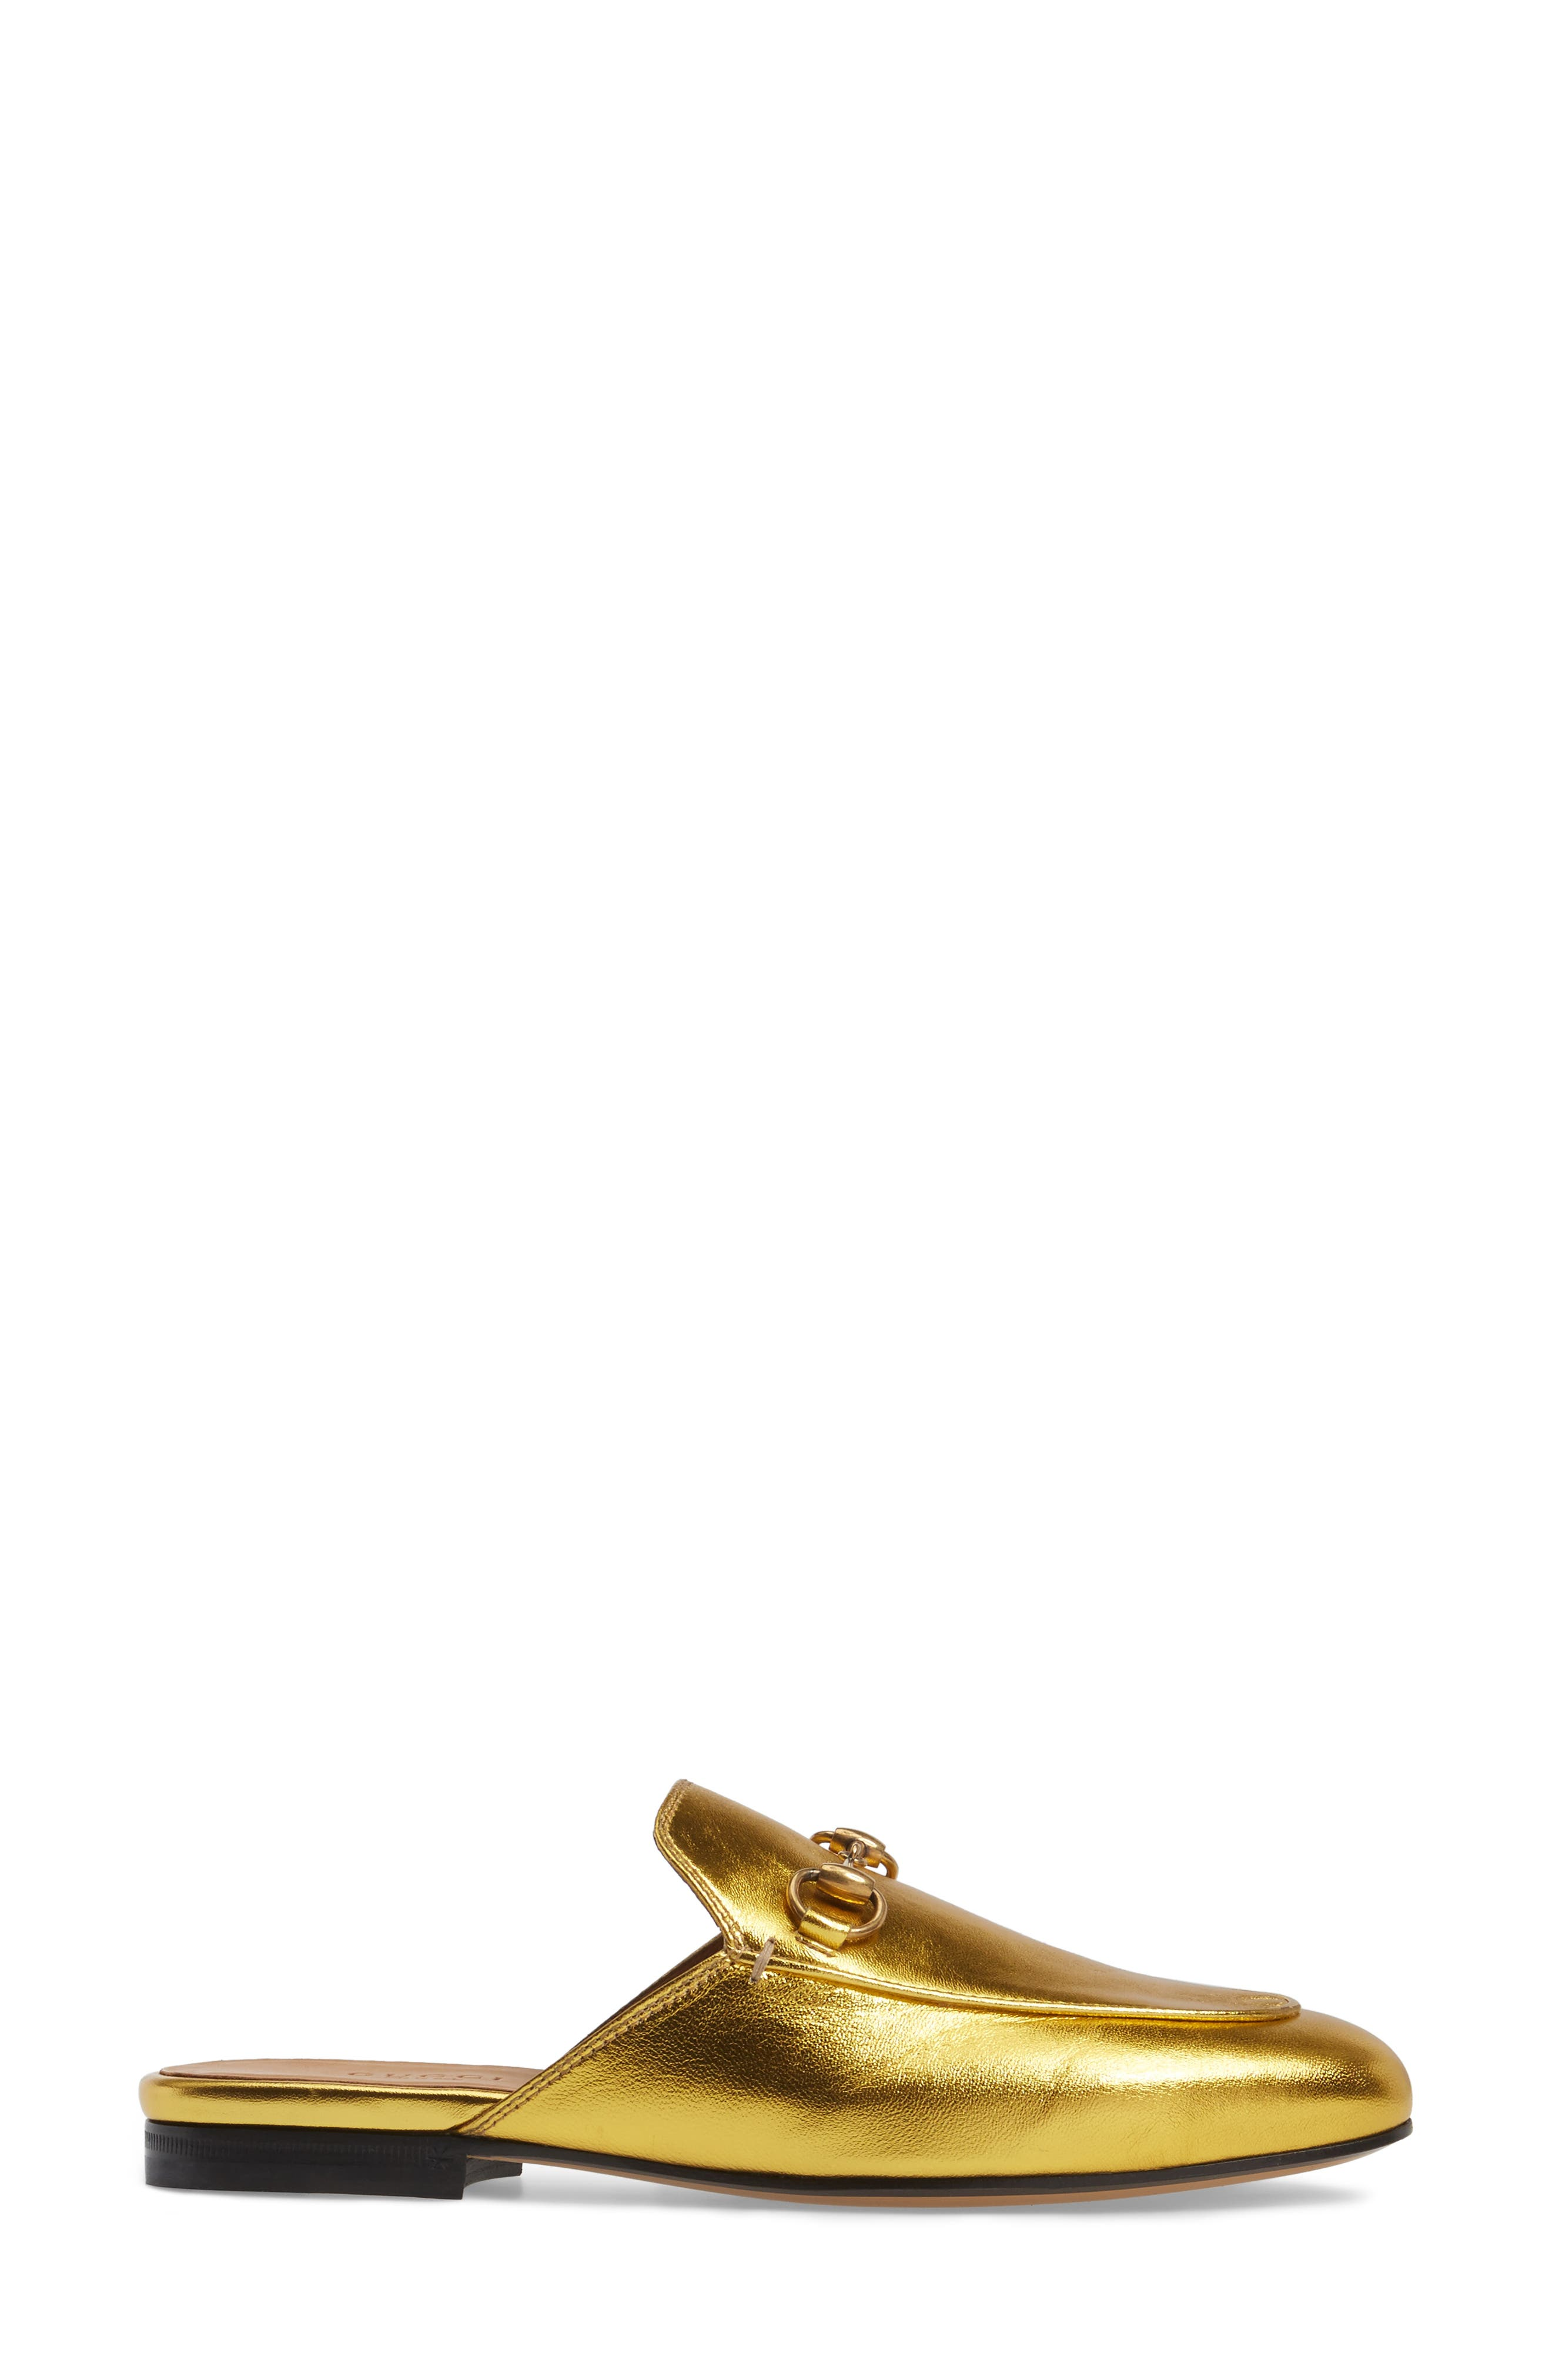 Princetown Loafer Mule,                             Alternate thumbnail 3, color,                             Metallic Gold Leather